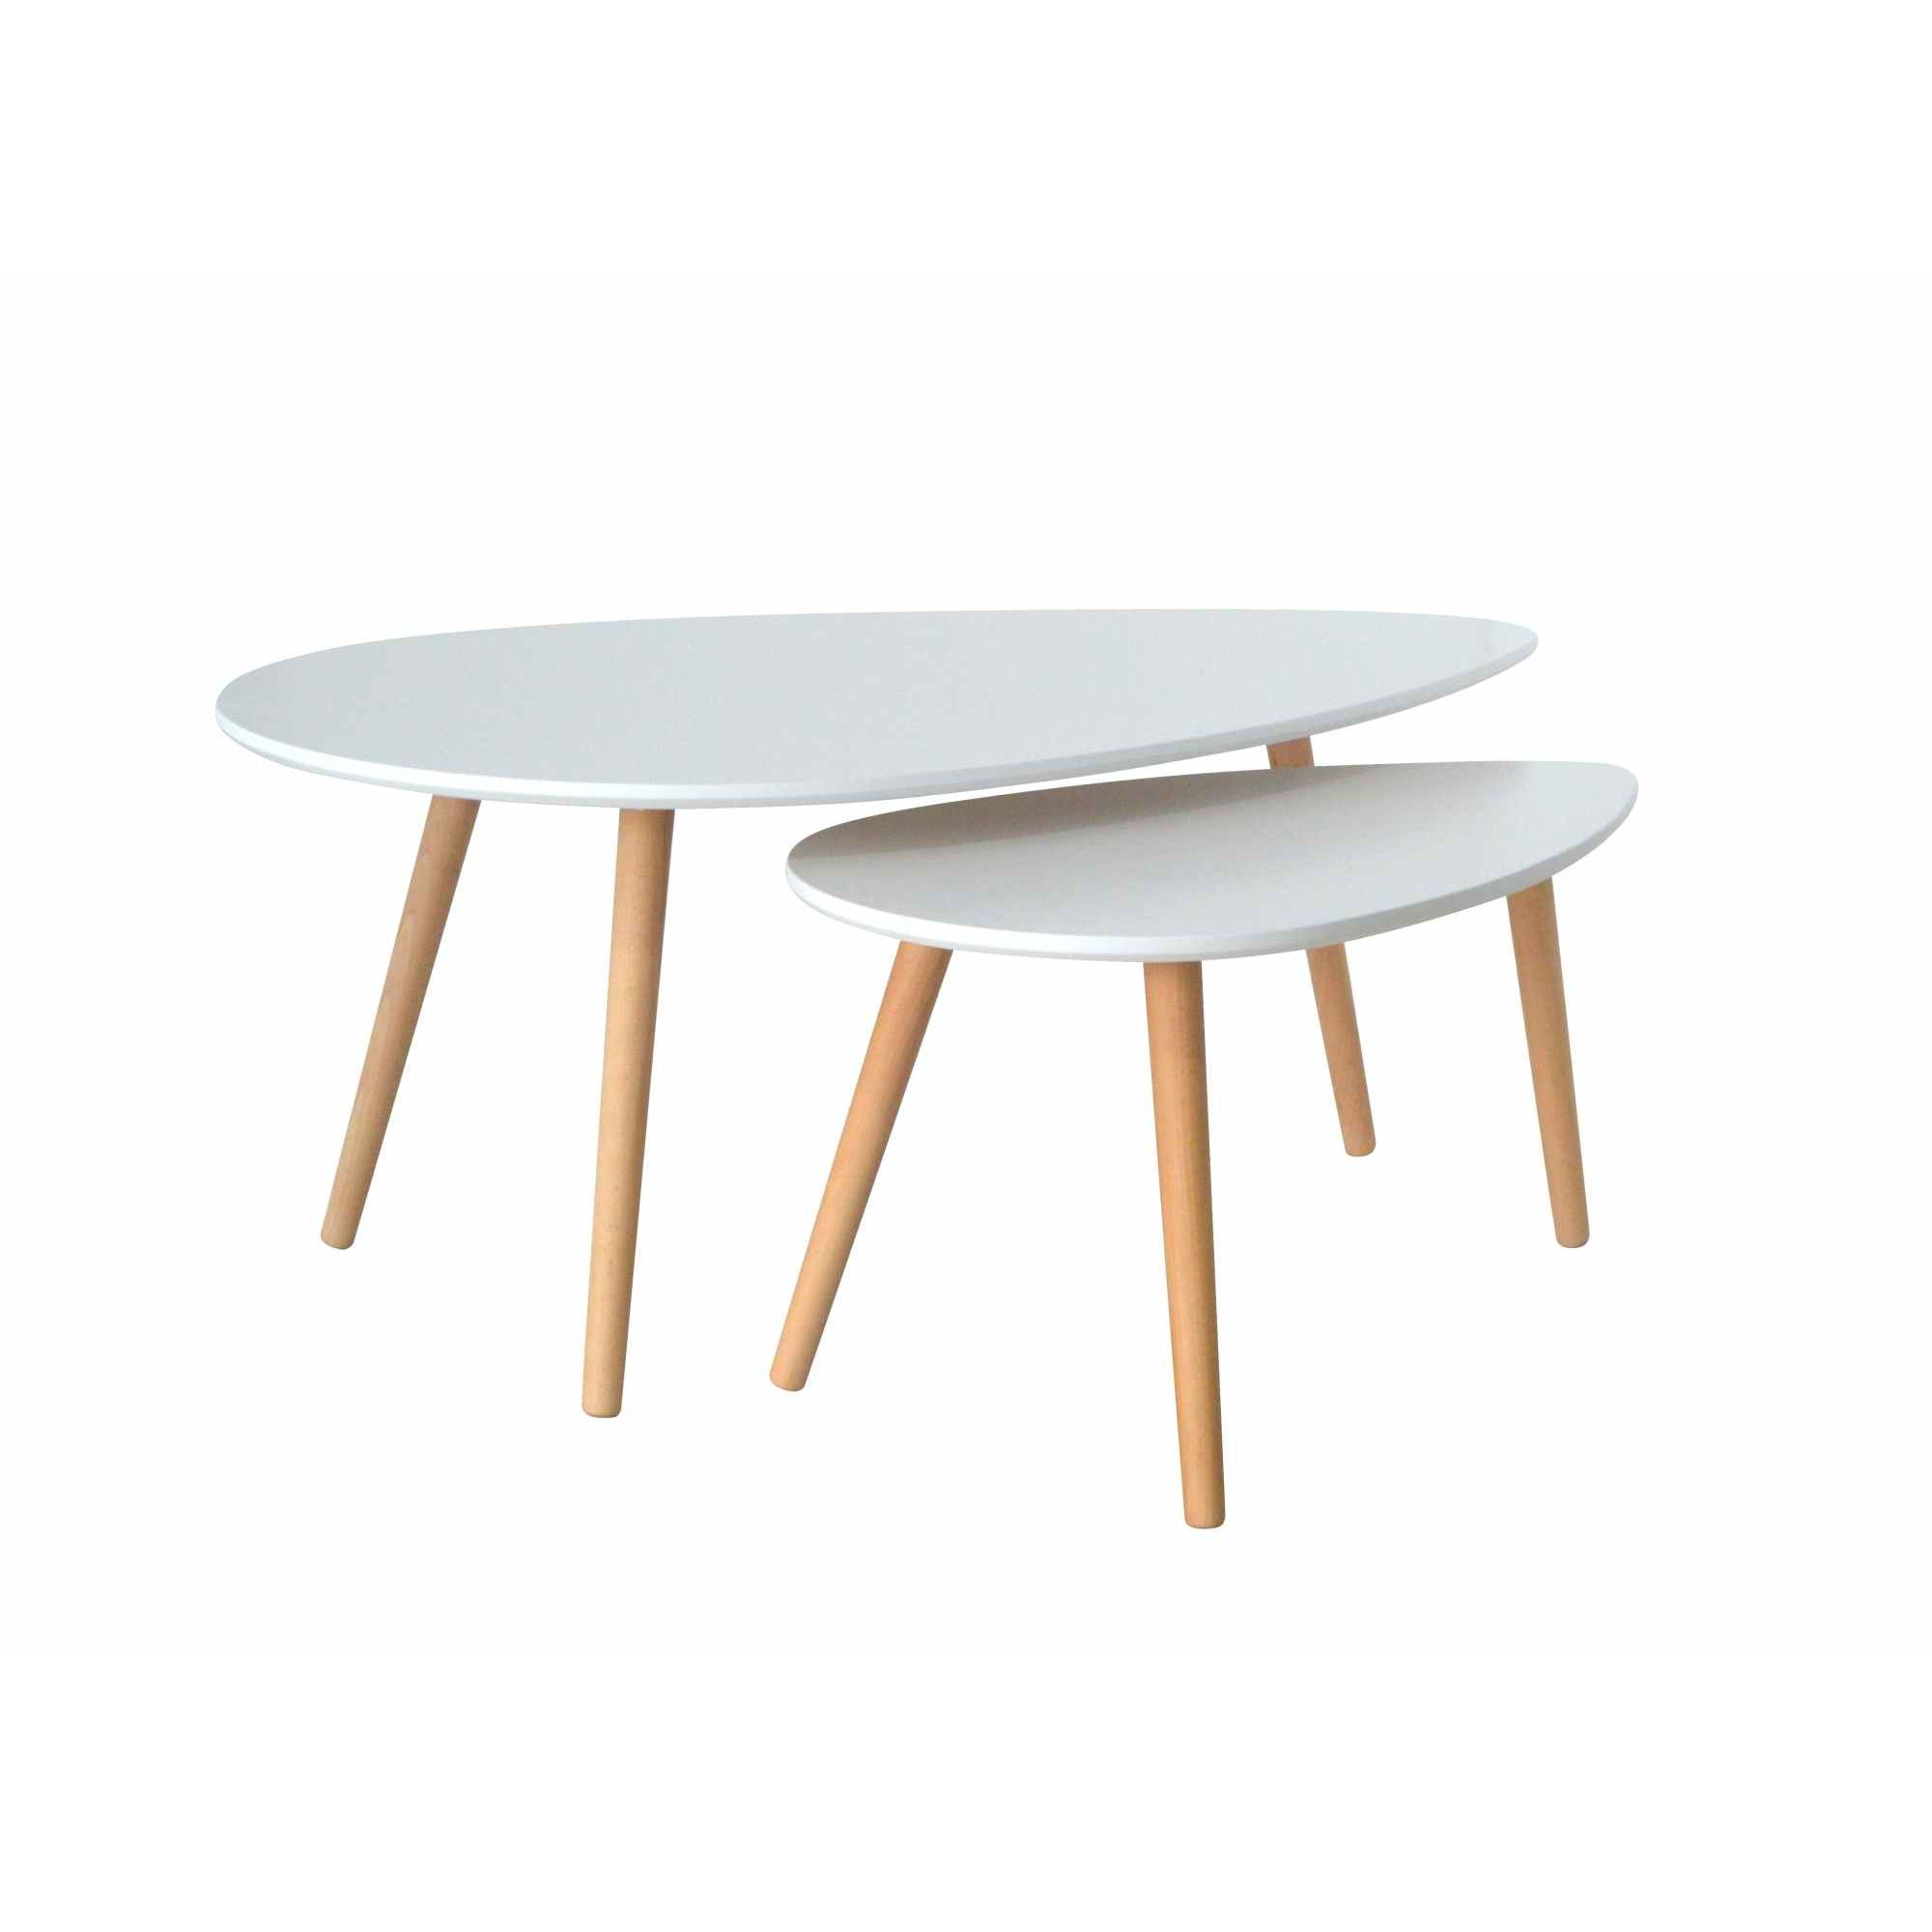 Table basse scandinave bois clair - Table basse scandinave gigogne ...